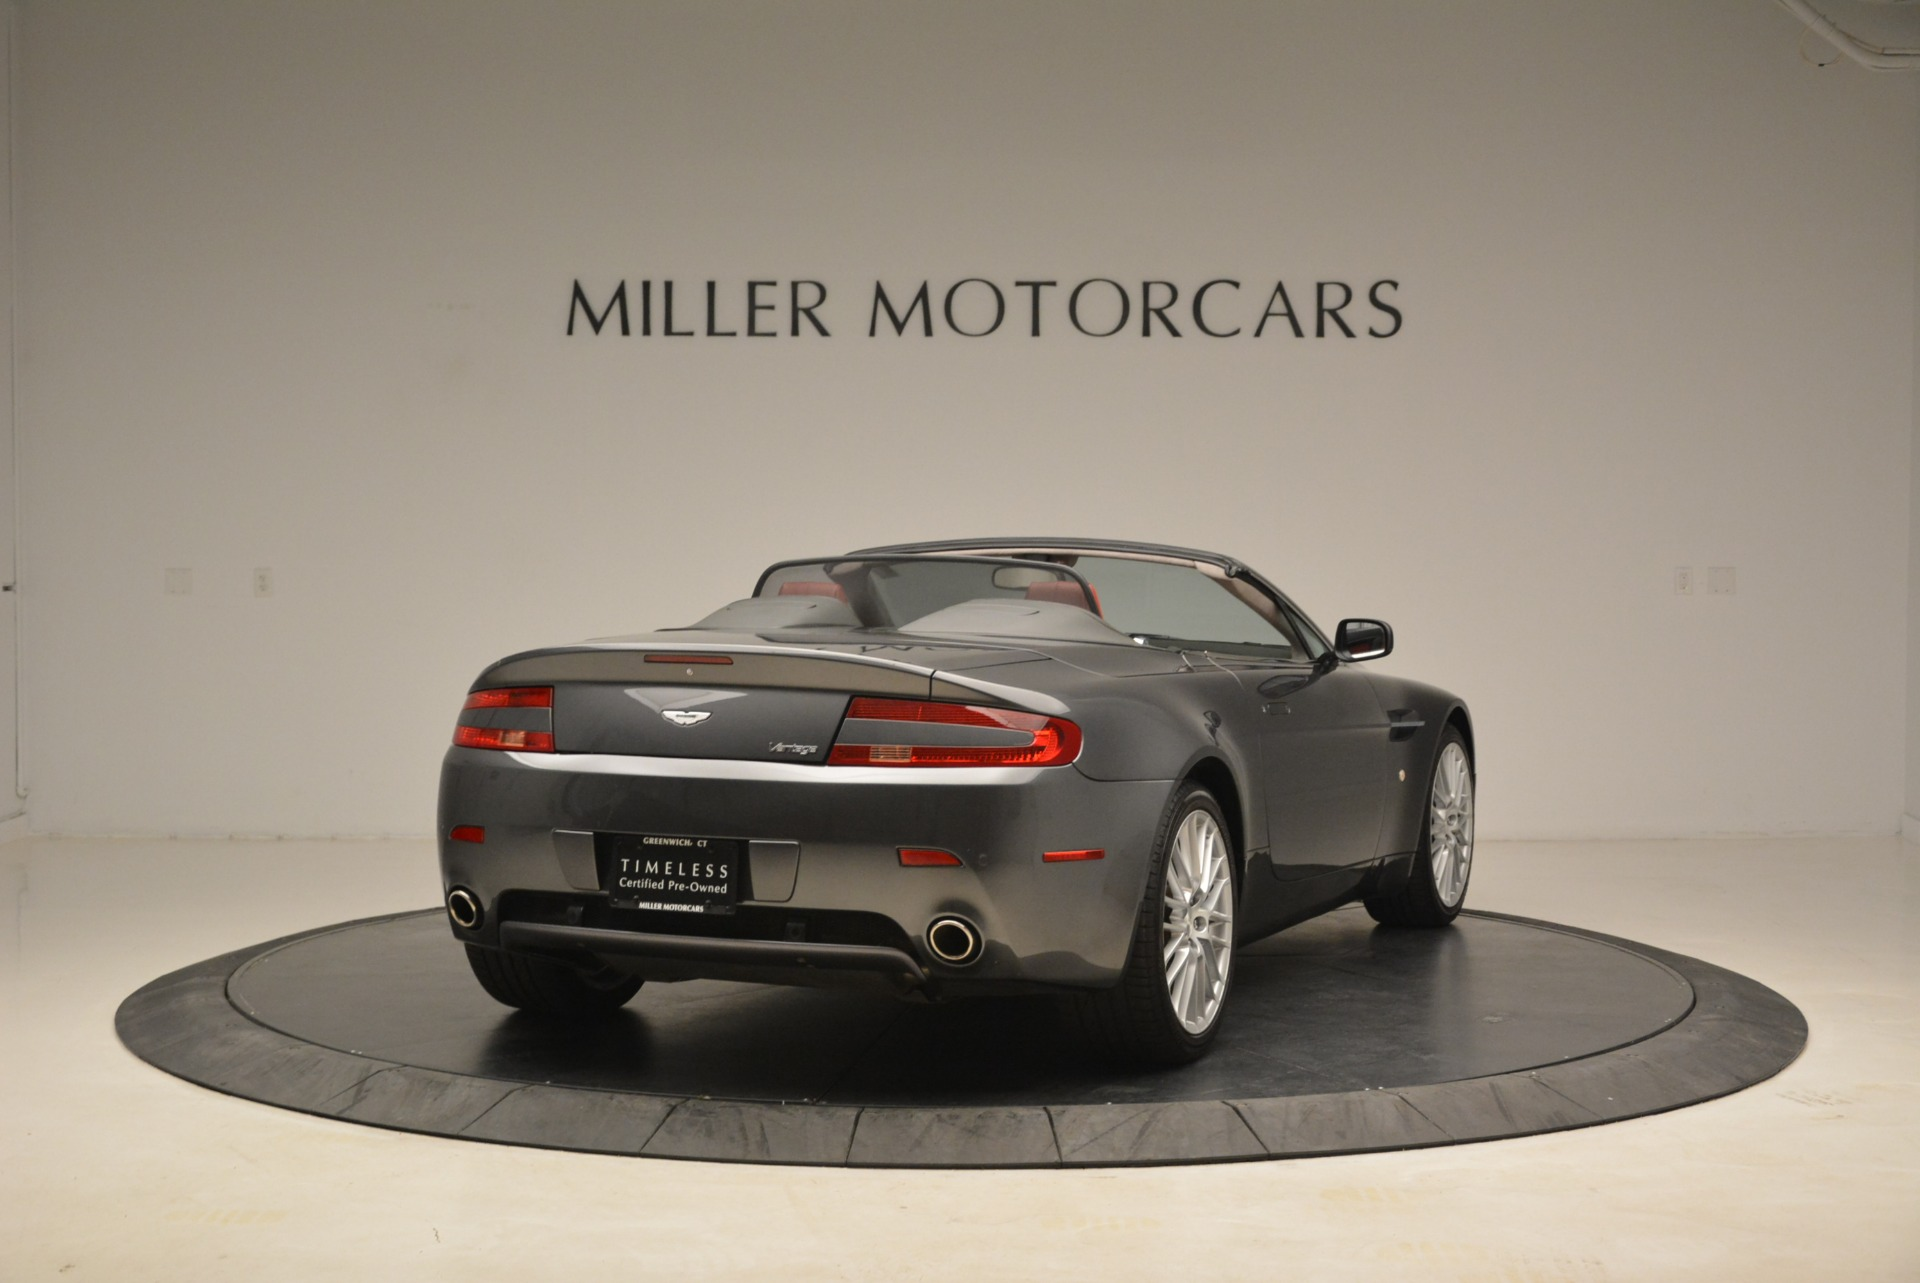 Used 2009 Aston Martin V8 Vantage Roadster For Sale In Westport, CT 2123_p7